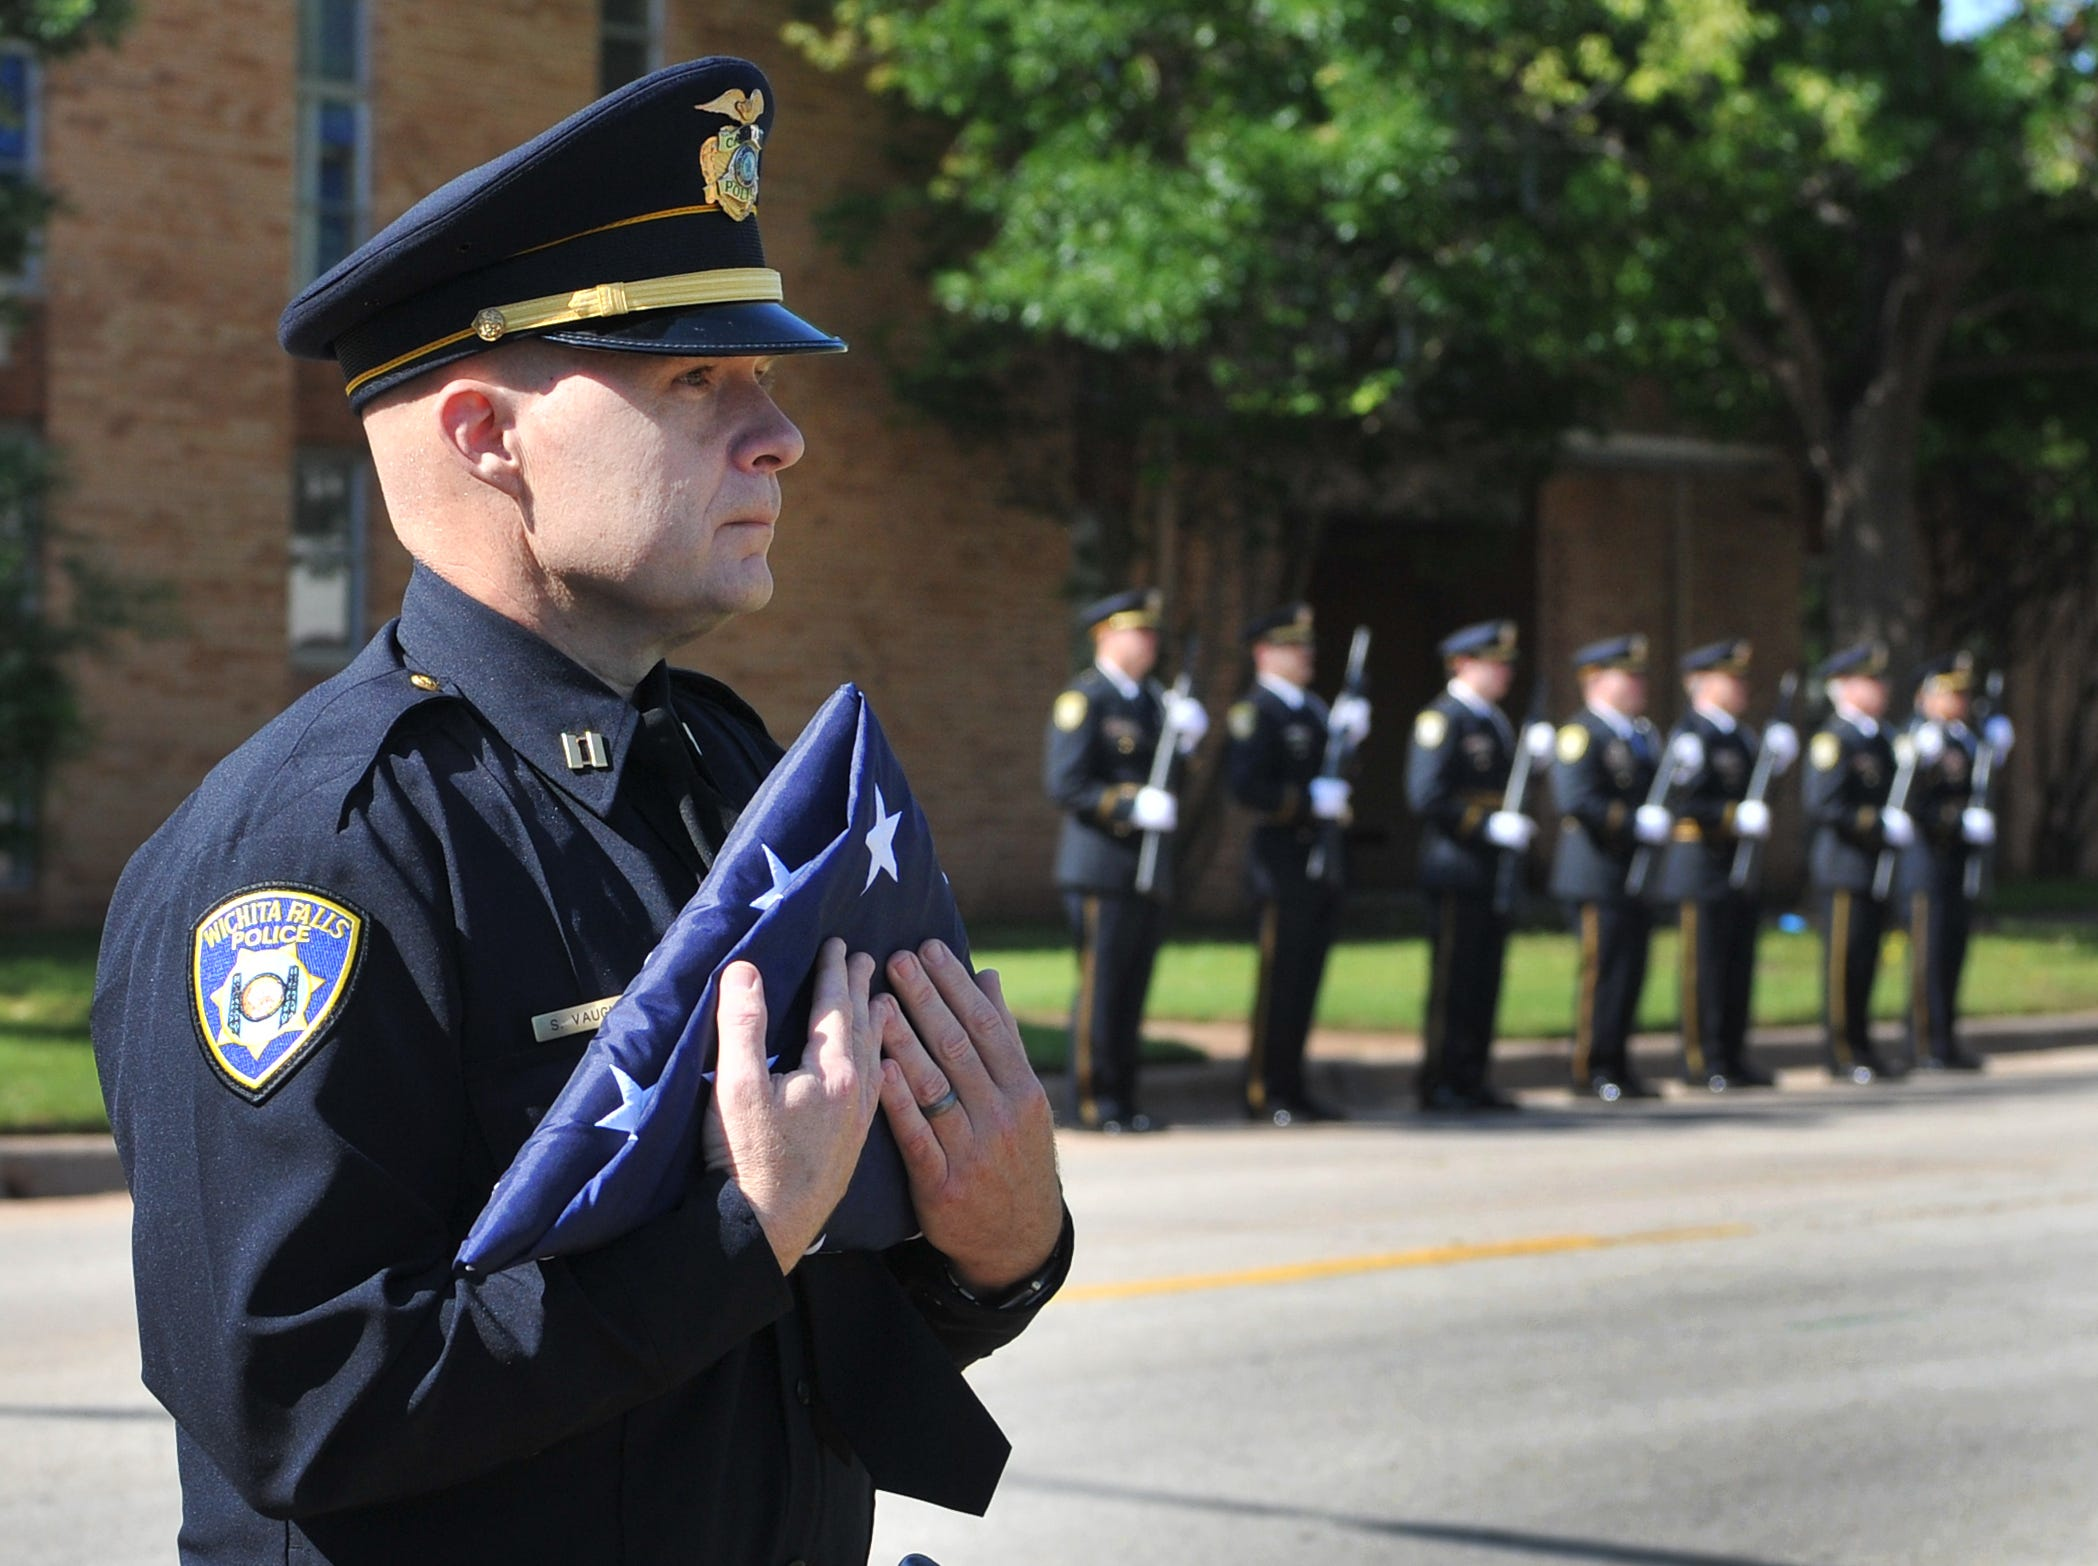 Wichita Falls police captain, Scott Vaughn stands ready to pay his respects during the WFPD annual memorial service held to honor officers that have fallen during their duty to serve.